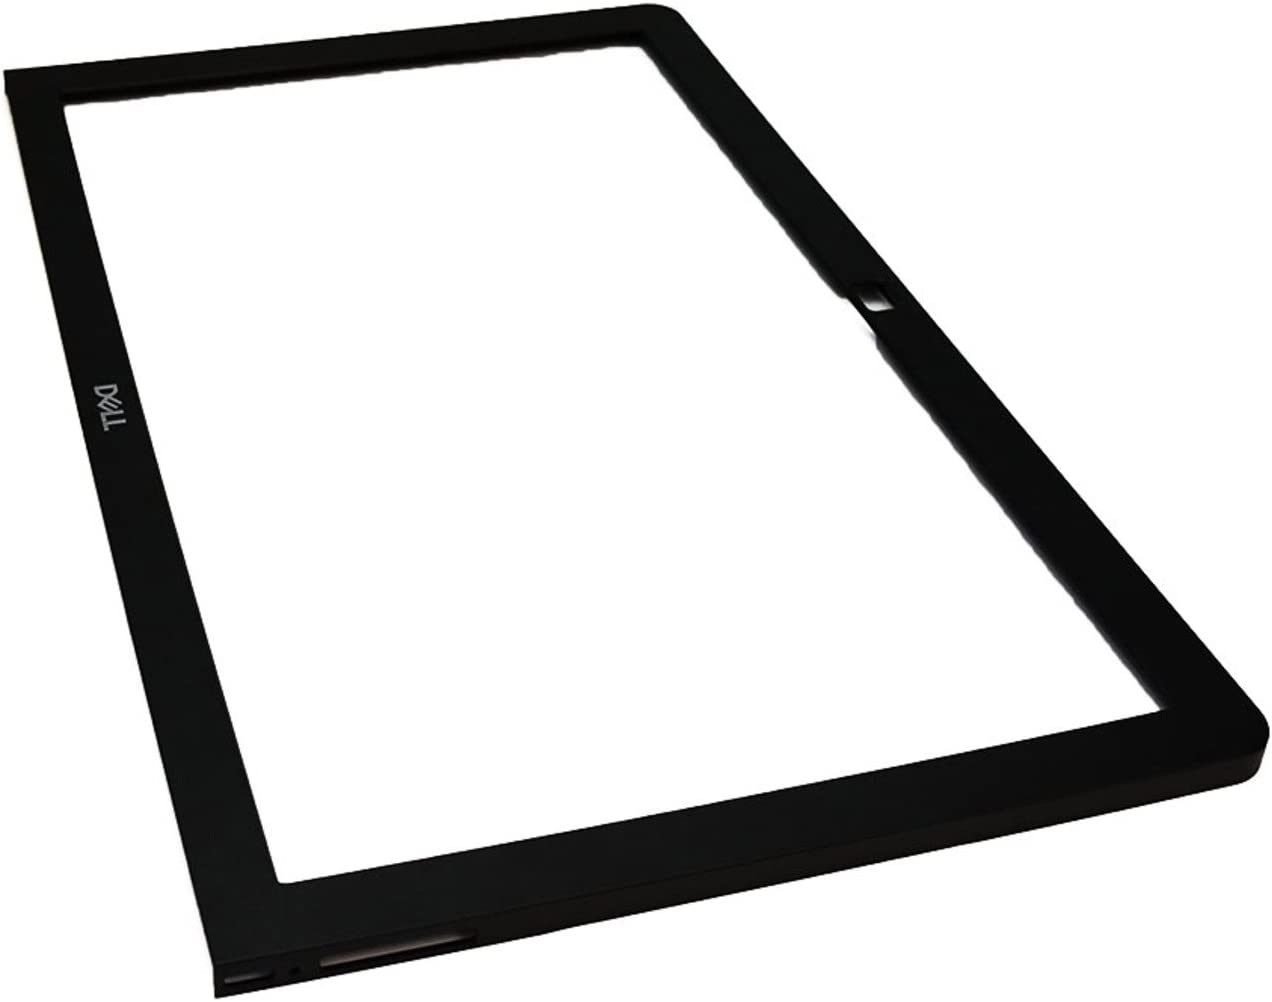 Aquamoon Trading New Genuine OEM Dell Optiplex 9030 All-in-One Desktop 23.8-Inch Display Screen Protector Plastic Bezel only (no Protector) +Camera Hole Charcoal Black Plastic